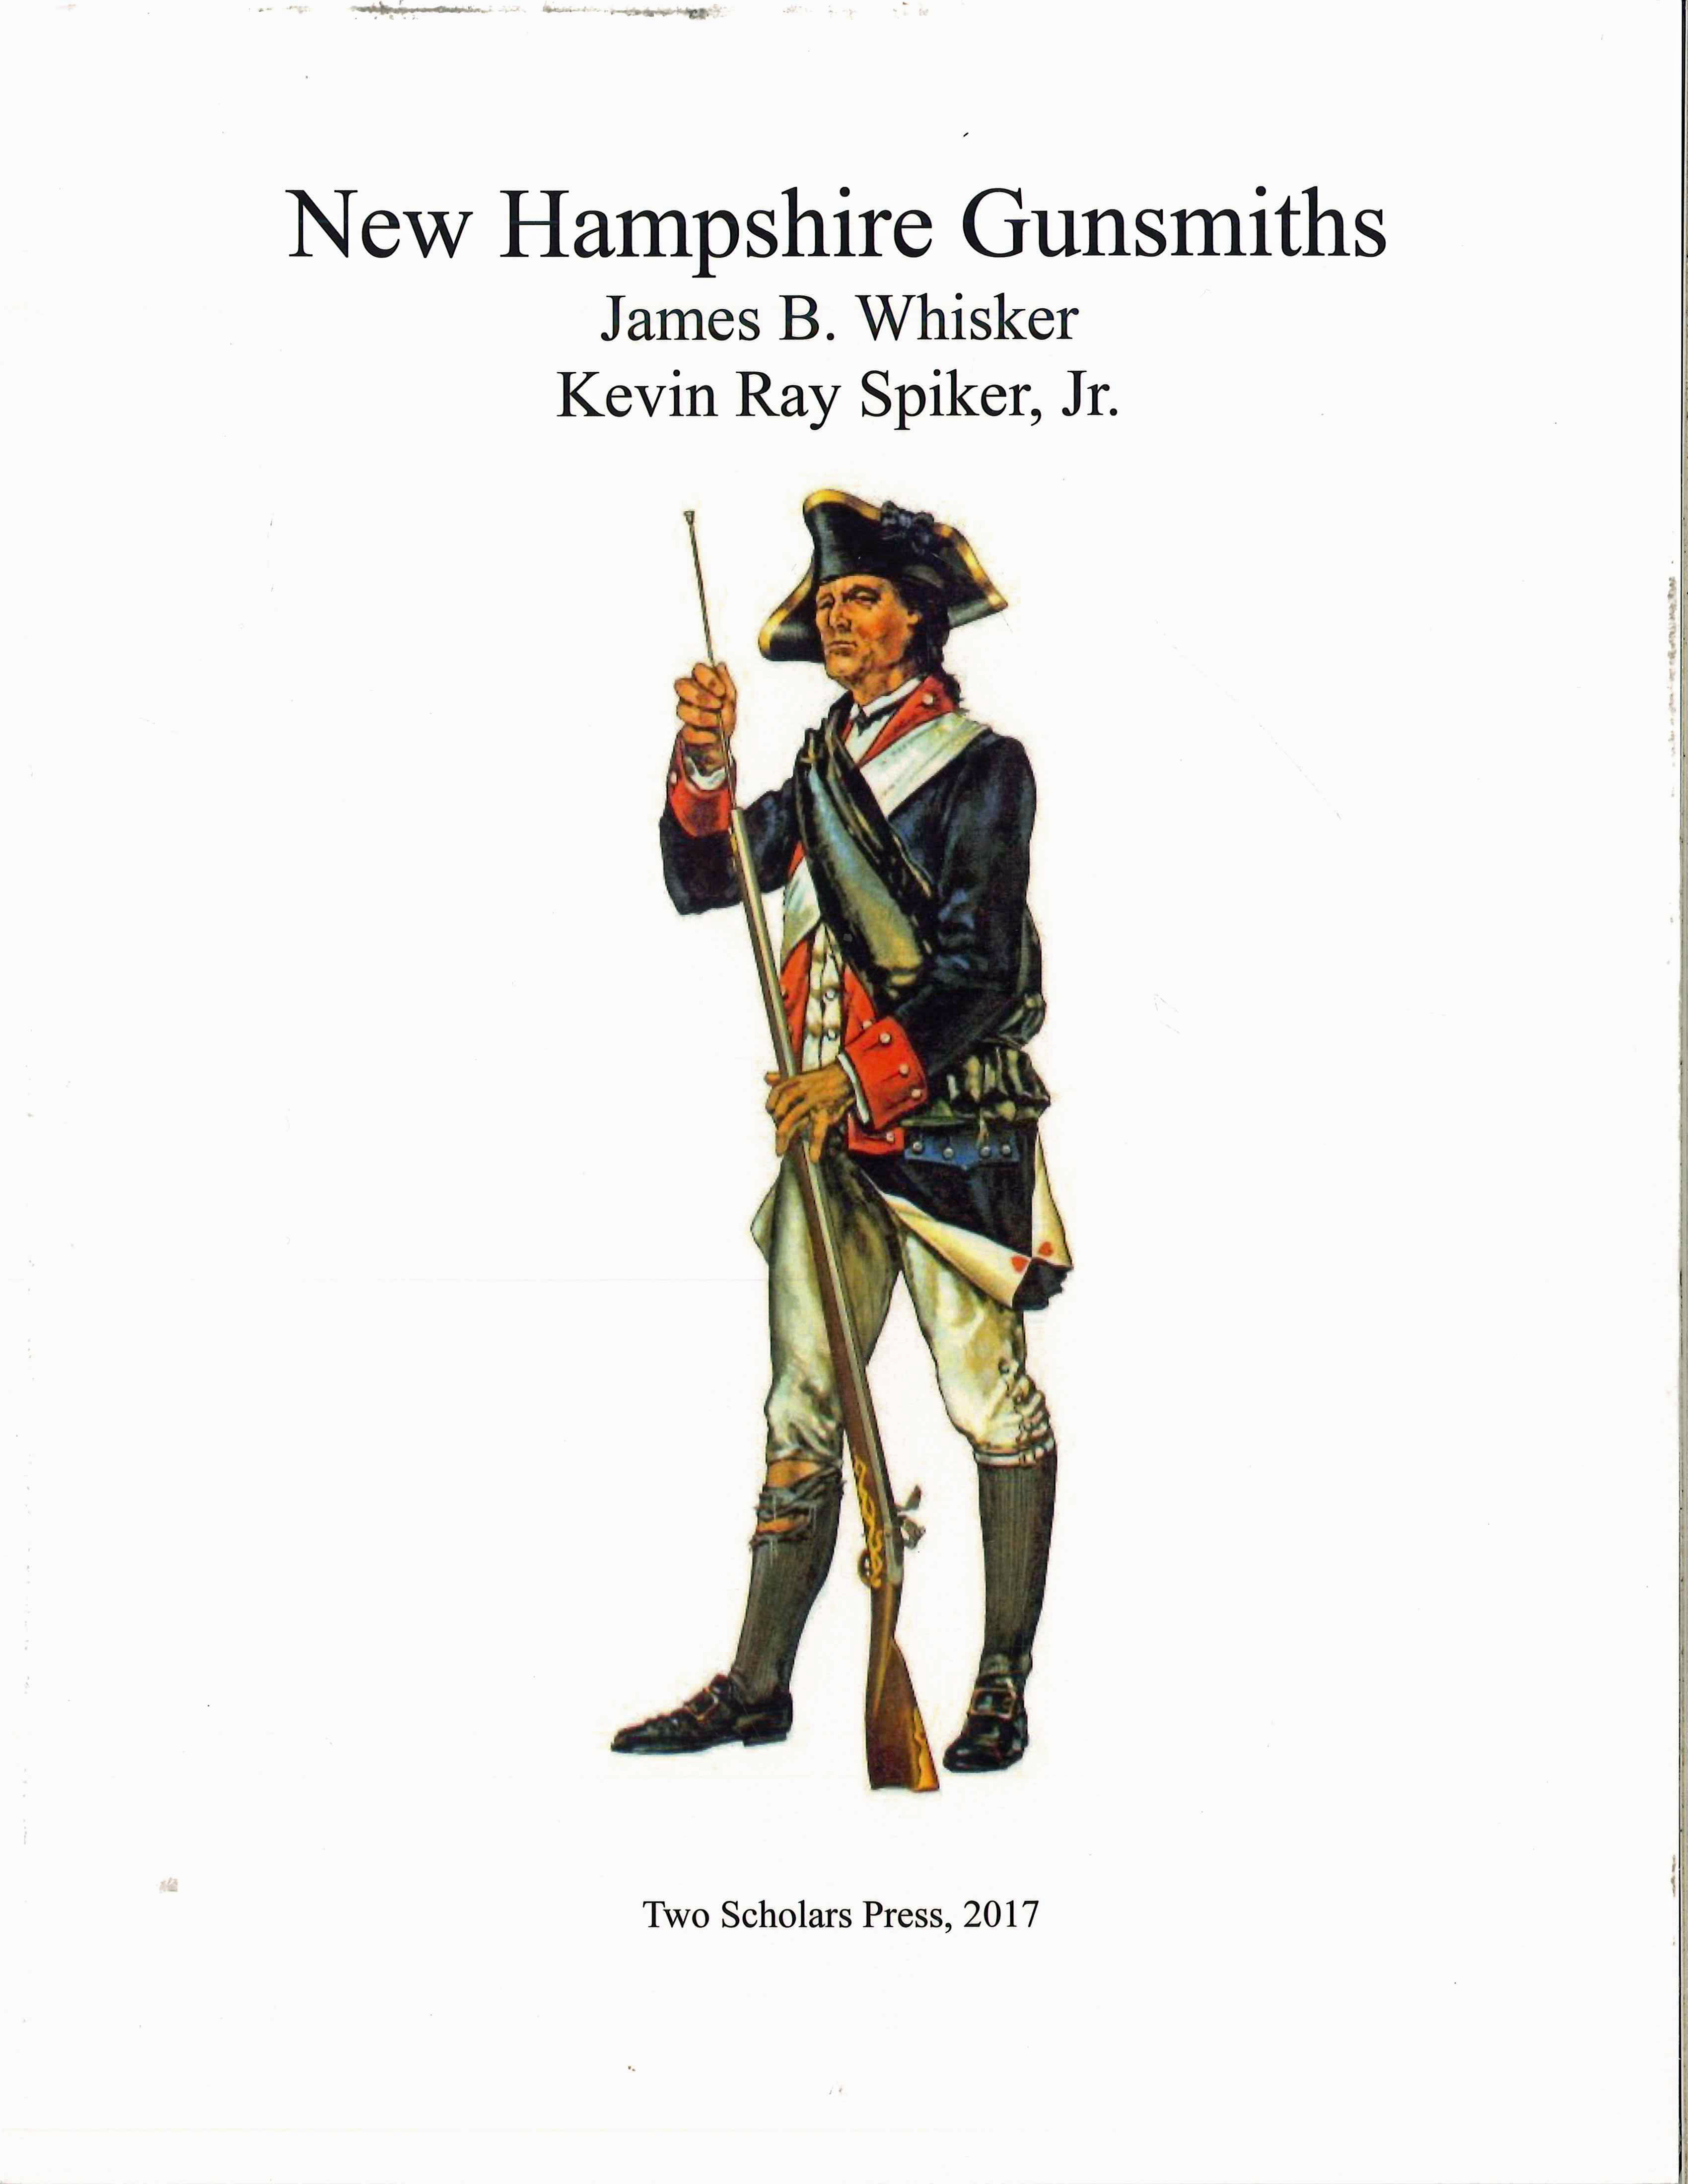 New Hampshire Gunsmiths by James B. Whisker and Kevin Ray Spiker, Jr.